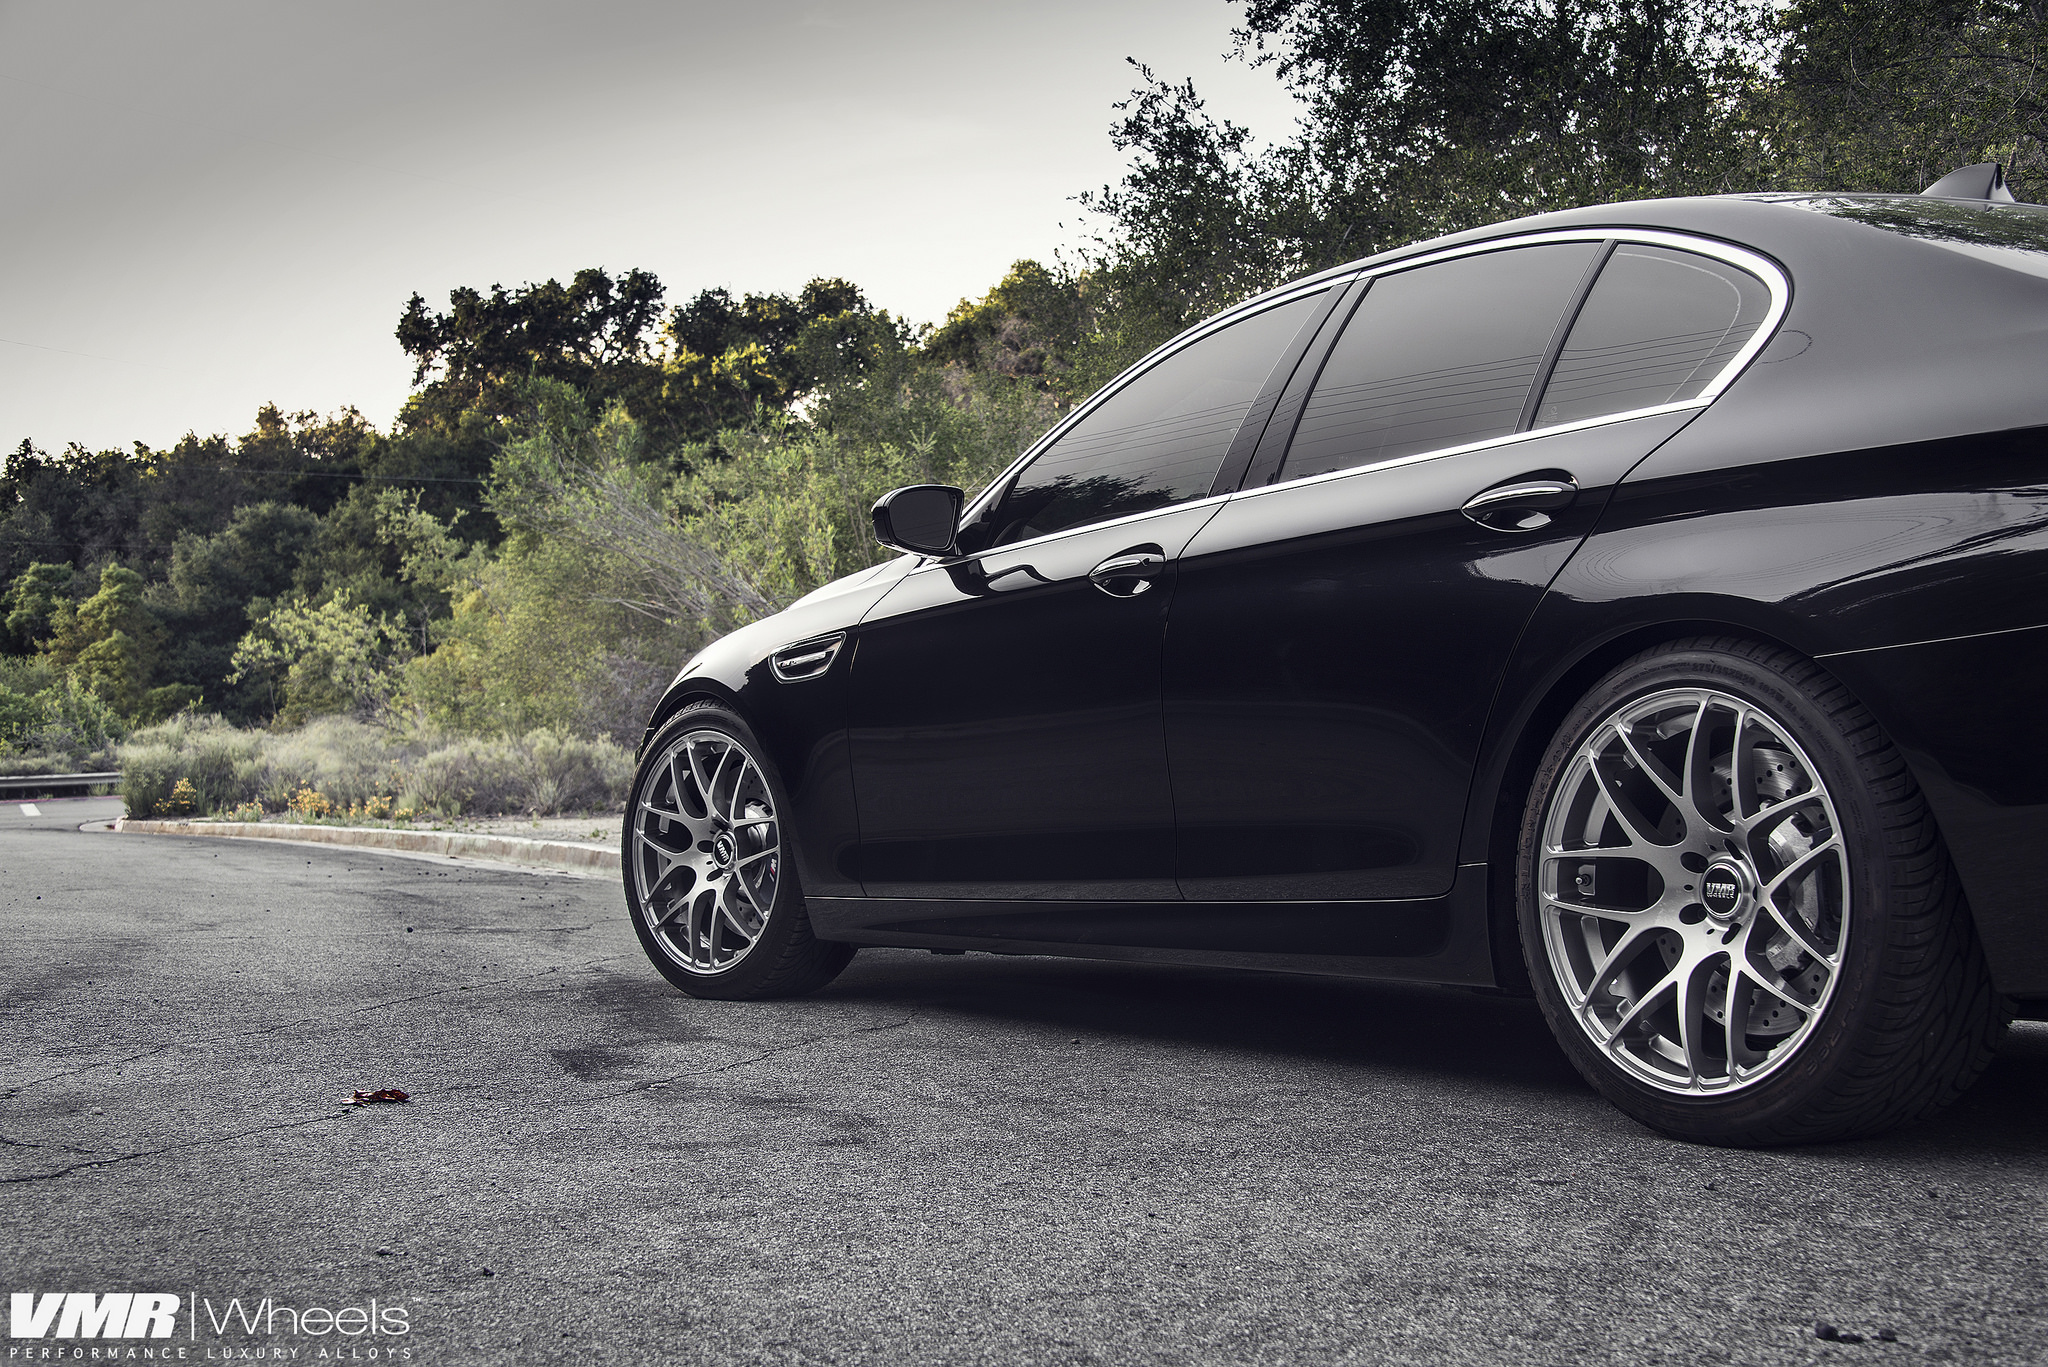 Azurite Black Bmw F10 M5 Is A Definition Of Beautiful